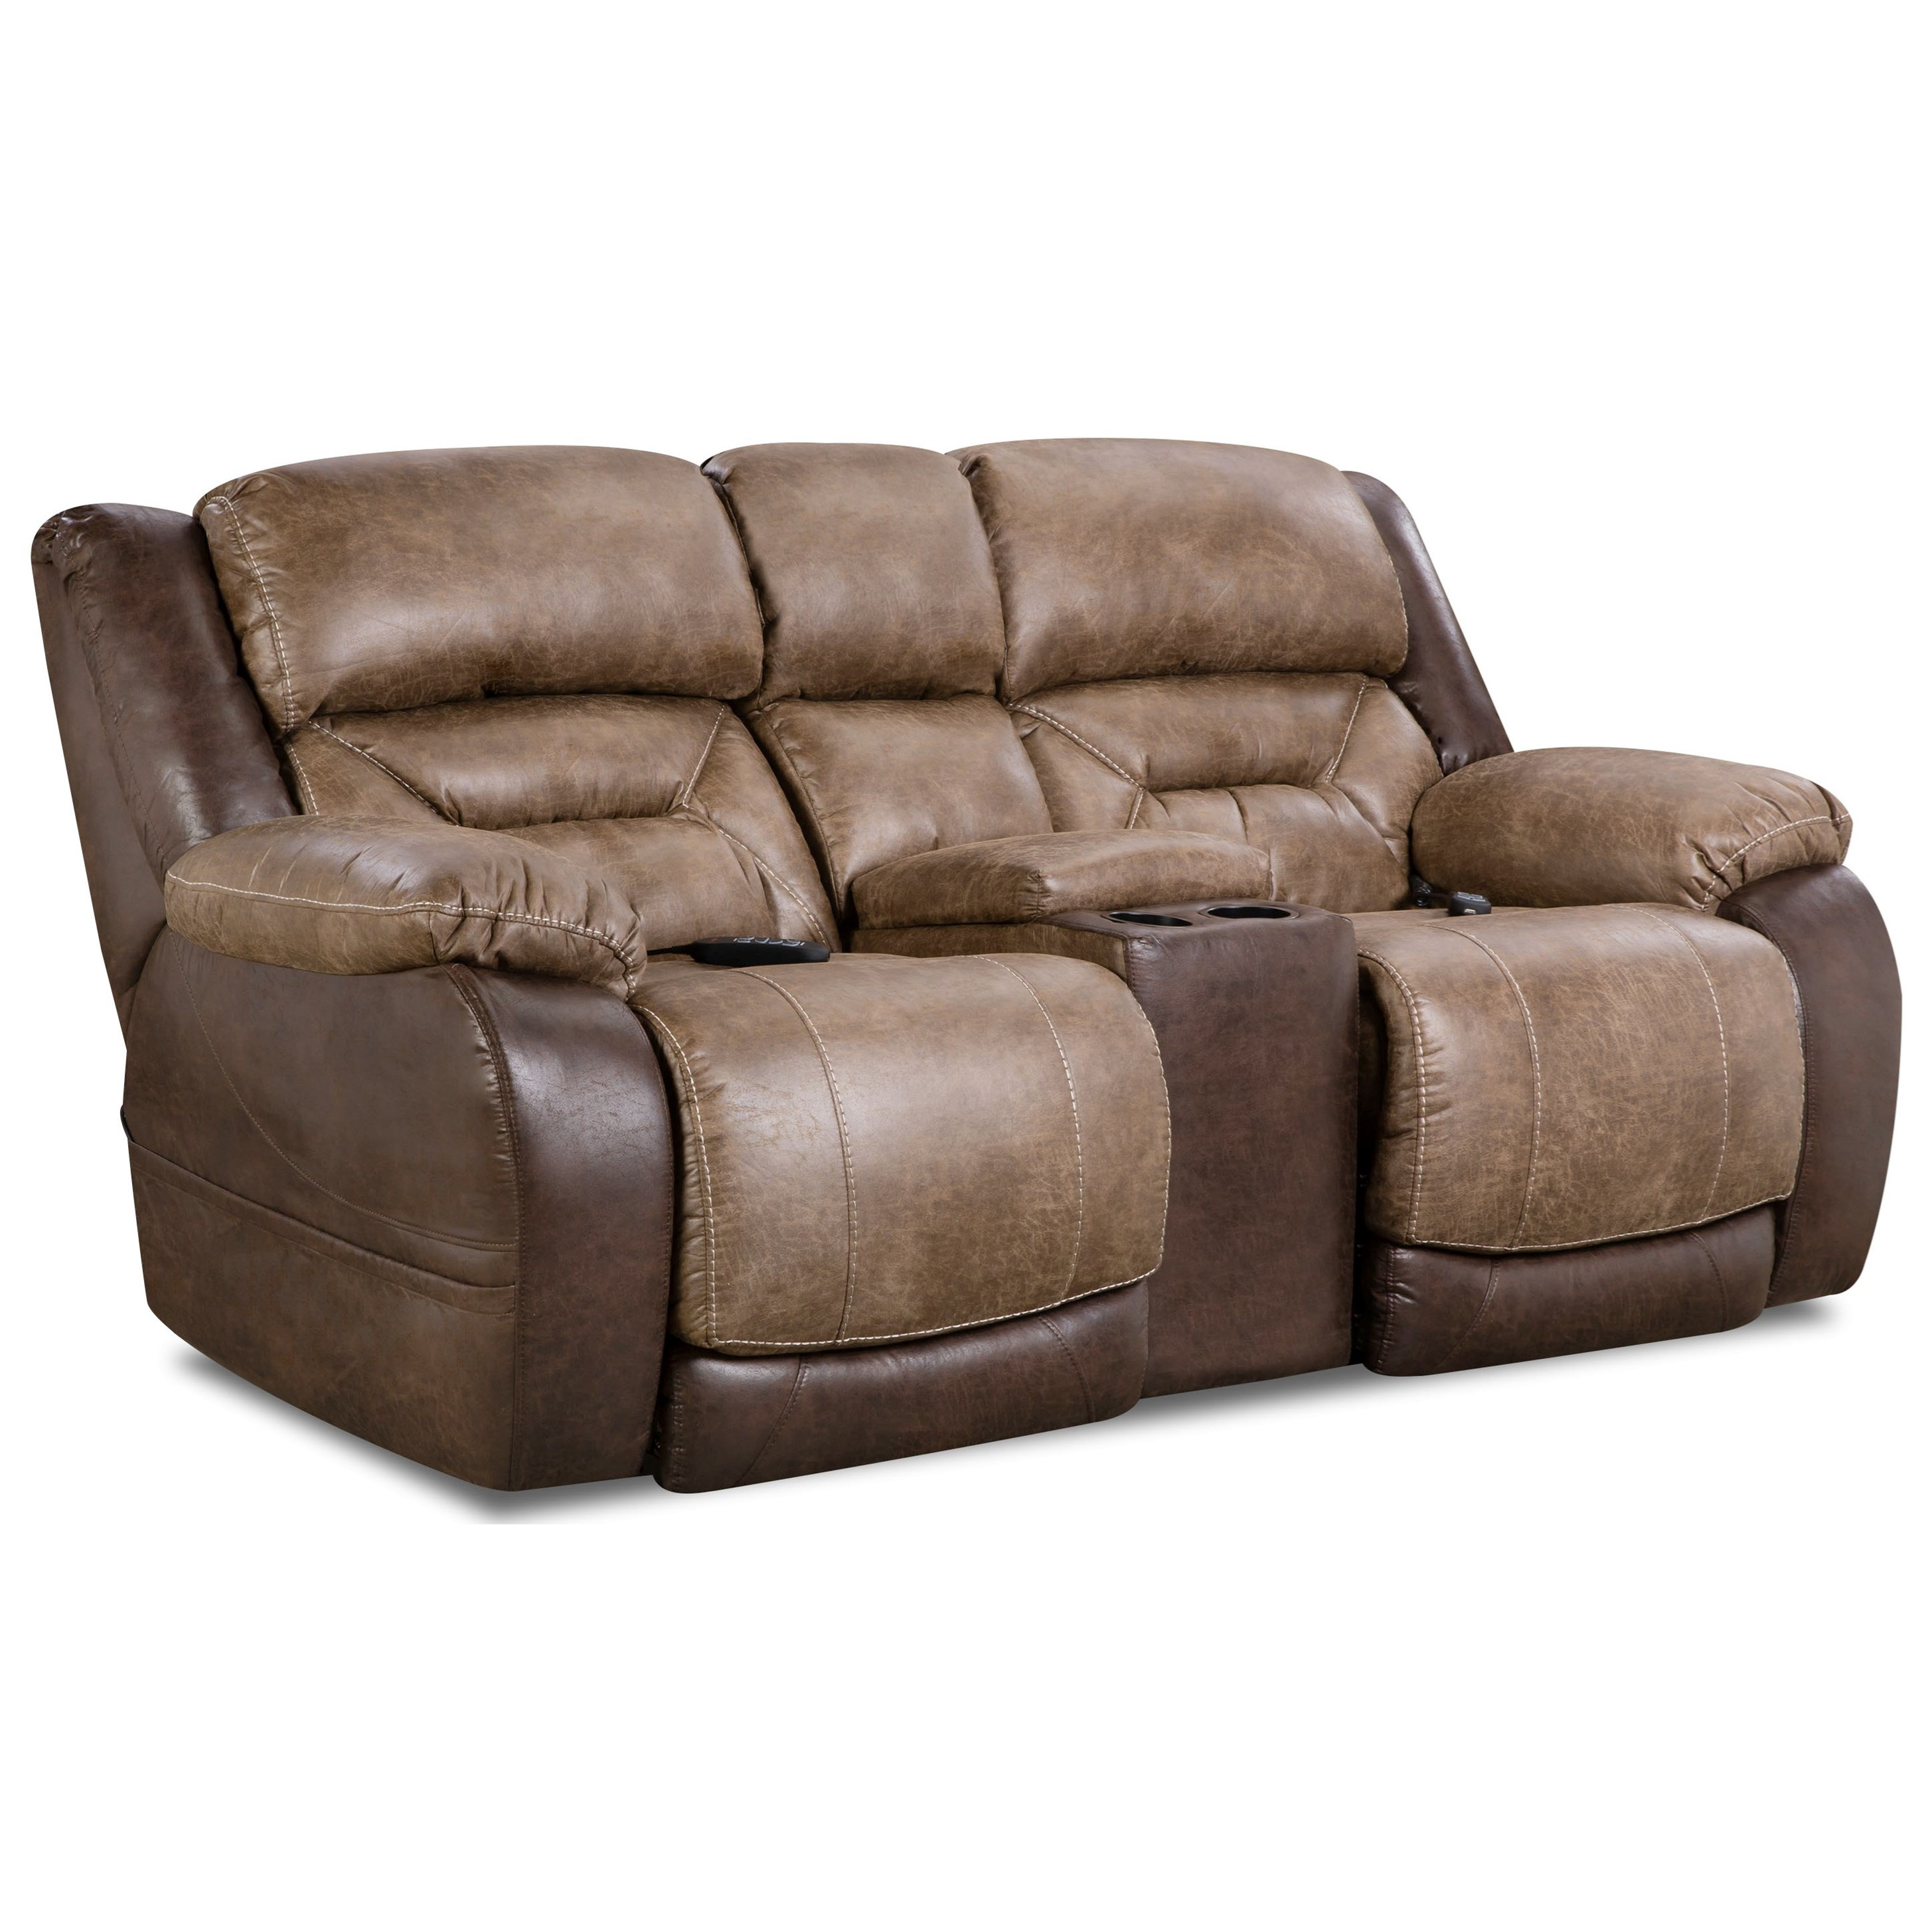 HomeStretch 168 Collection Power Console Loveseat - Item Number: 168-57-17